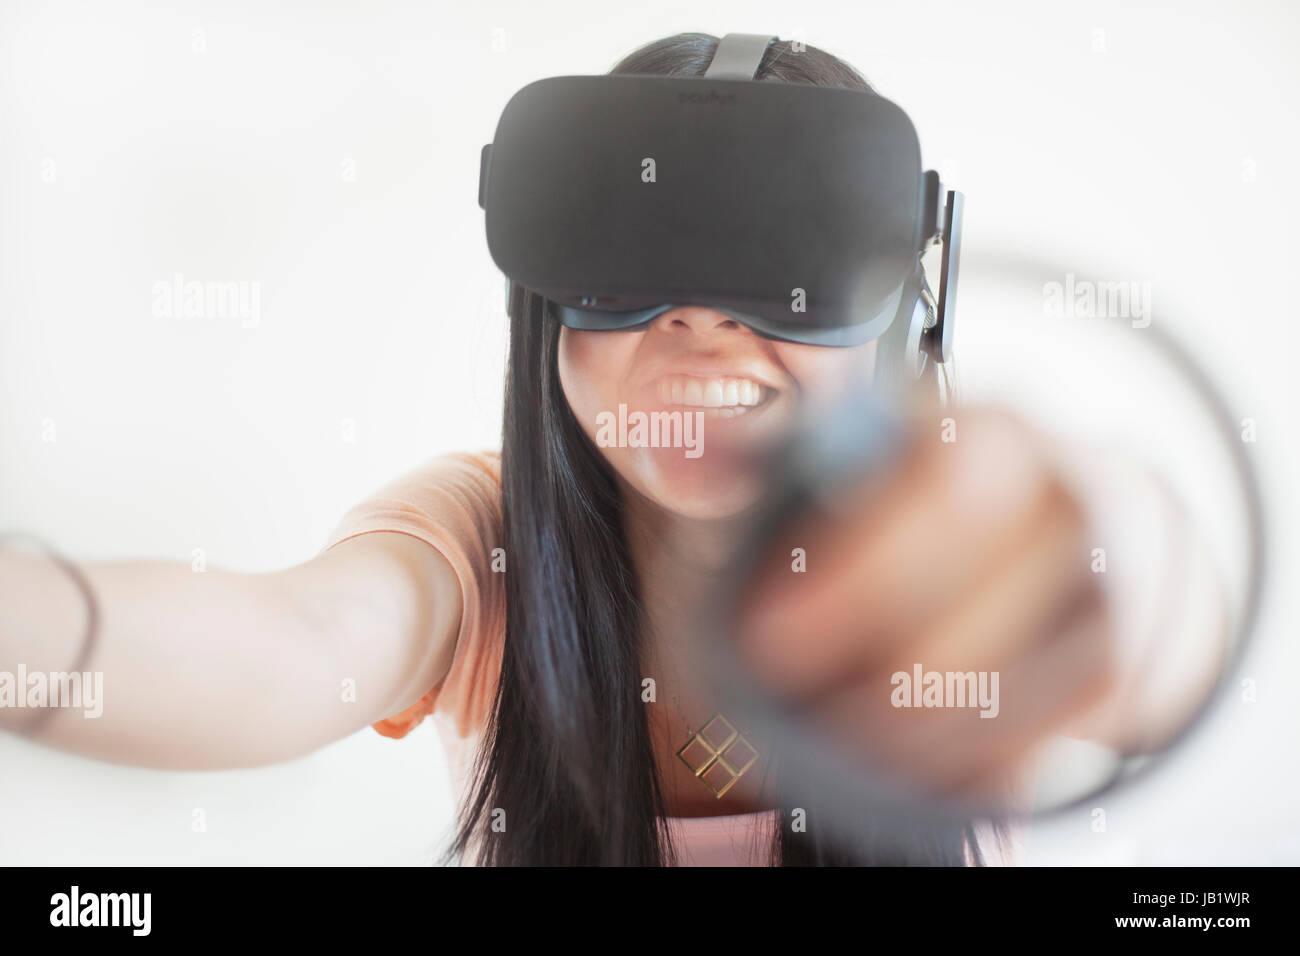 Young Asian woman wearing virtual reality headset Oculus Rift and demonstrating how to use the touch control - Stock Image